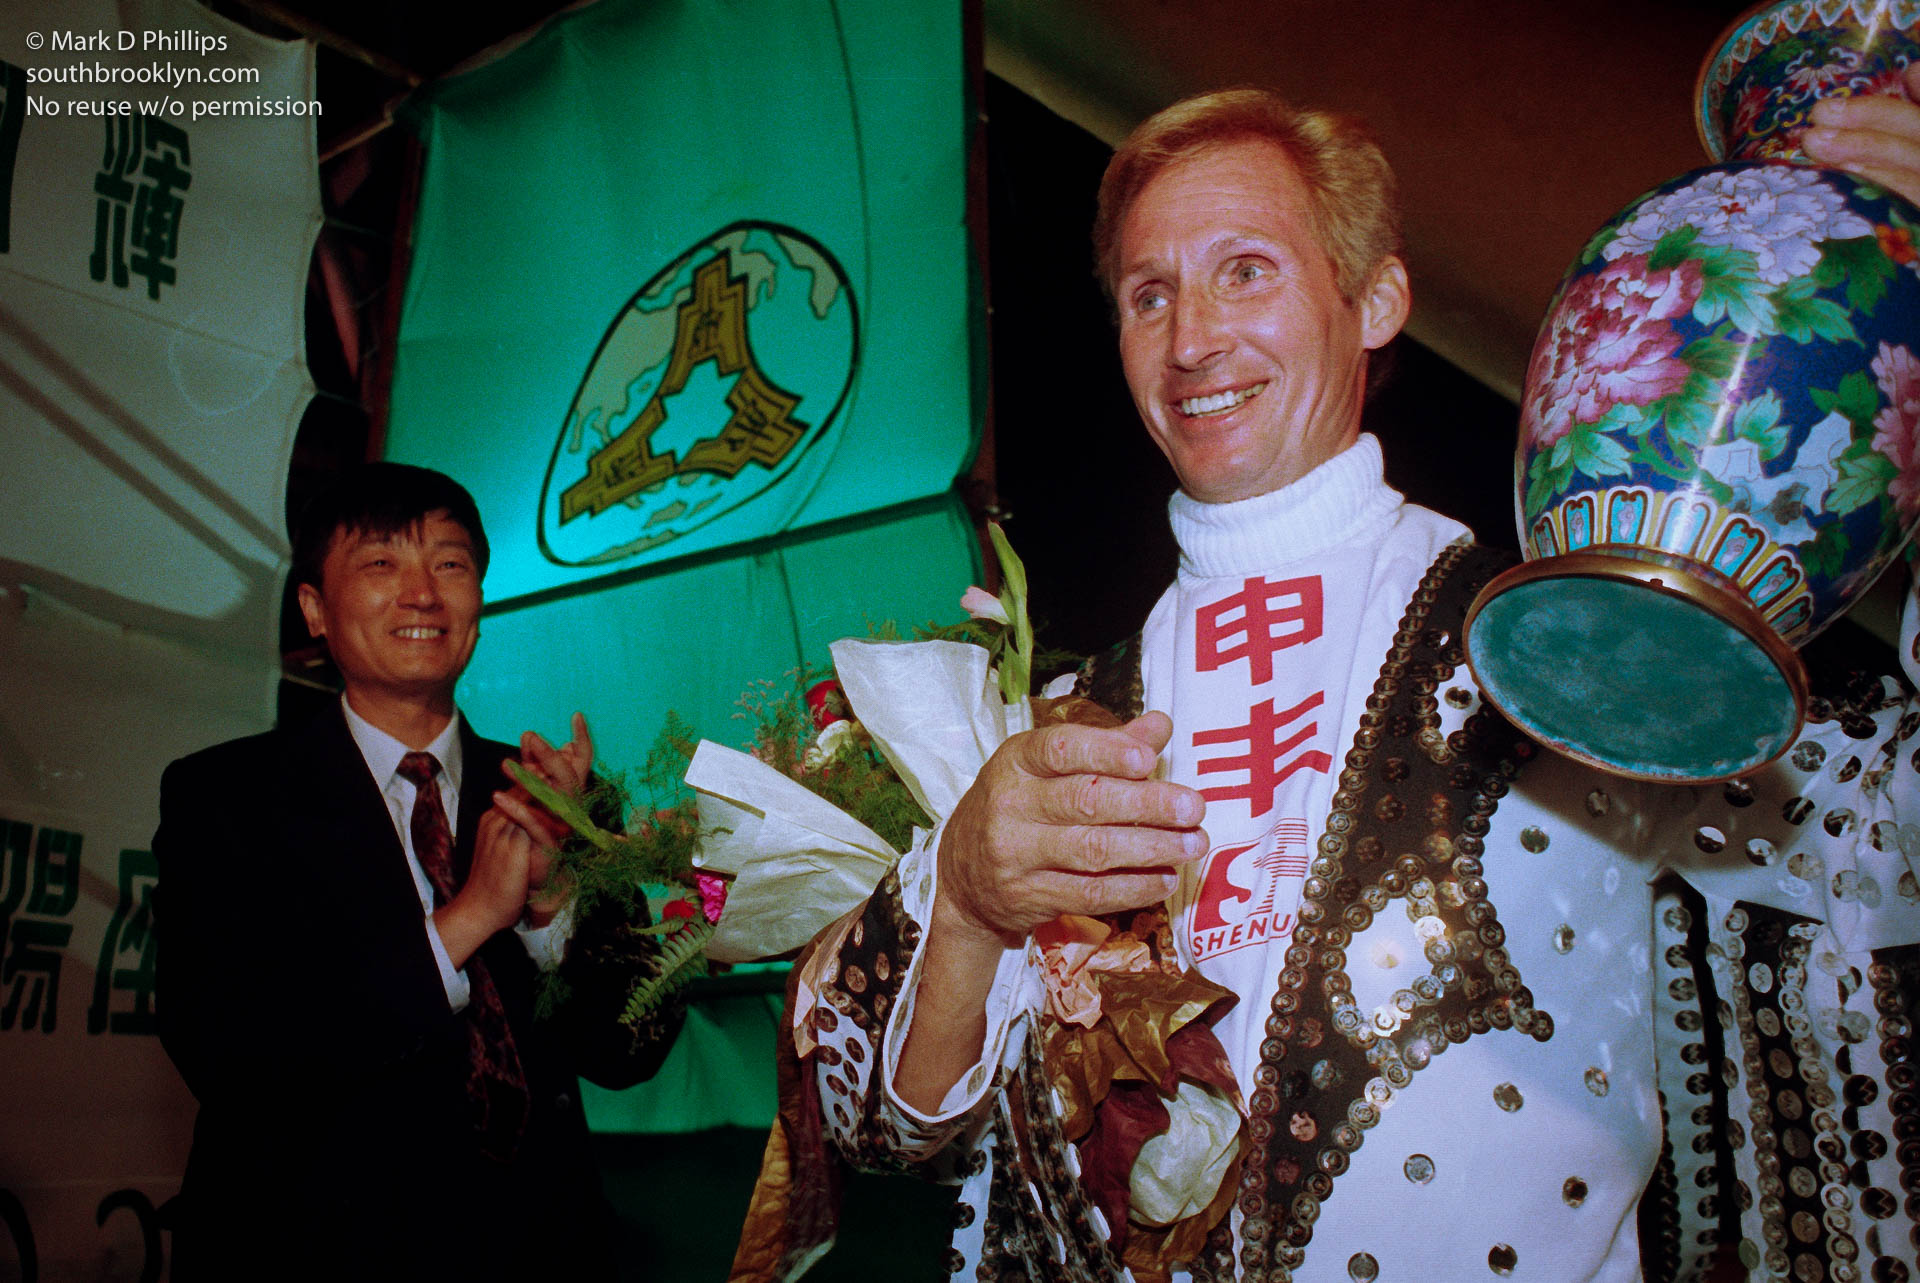 Jay Cochrane completes his skywalk in Shanghai, China, for the opening night of the Shanghai Tourism Festival on September 24, 1996.